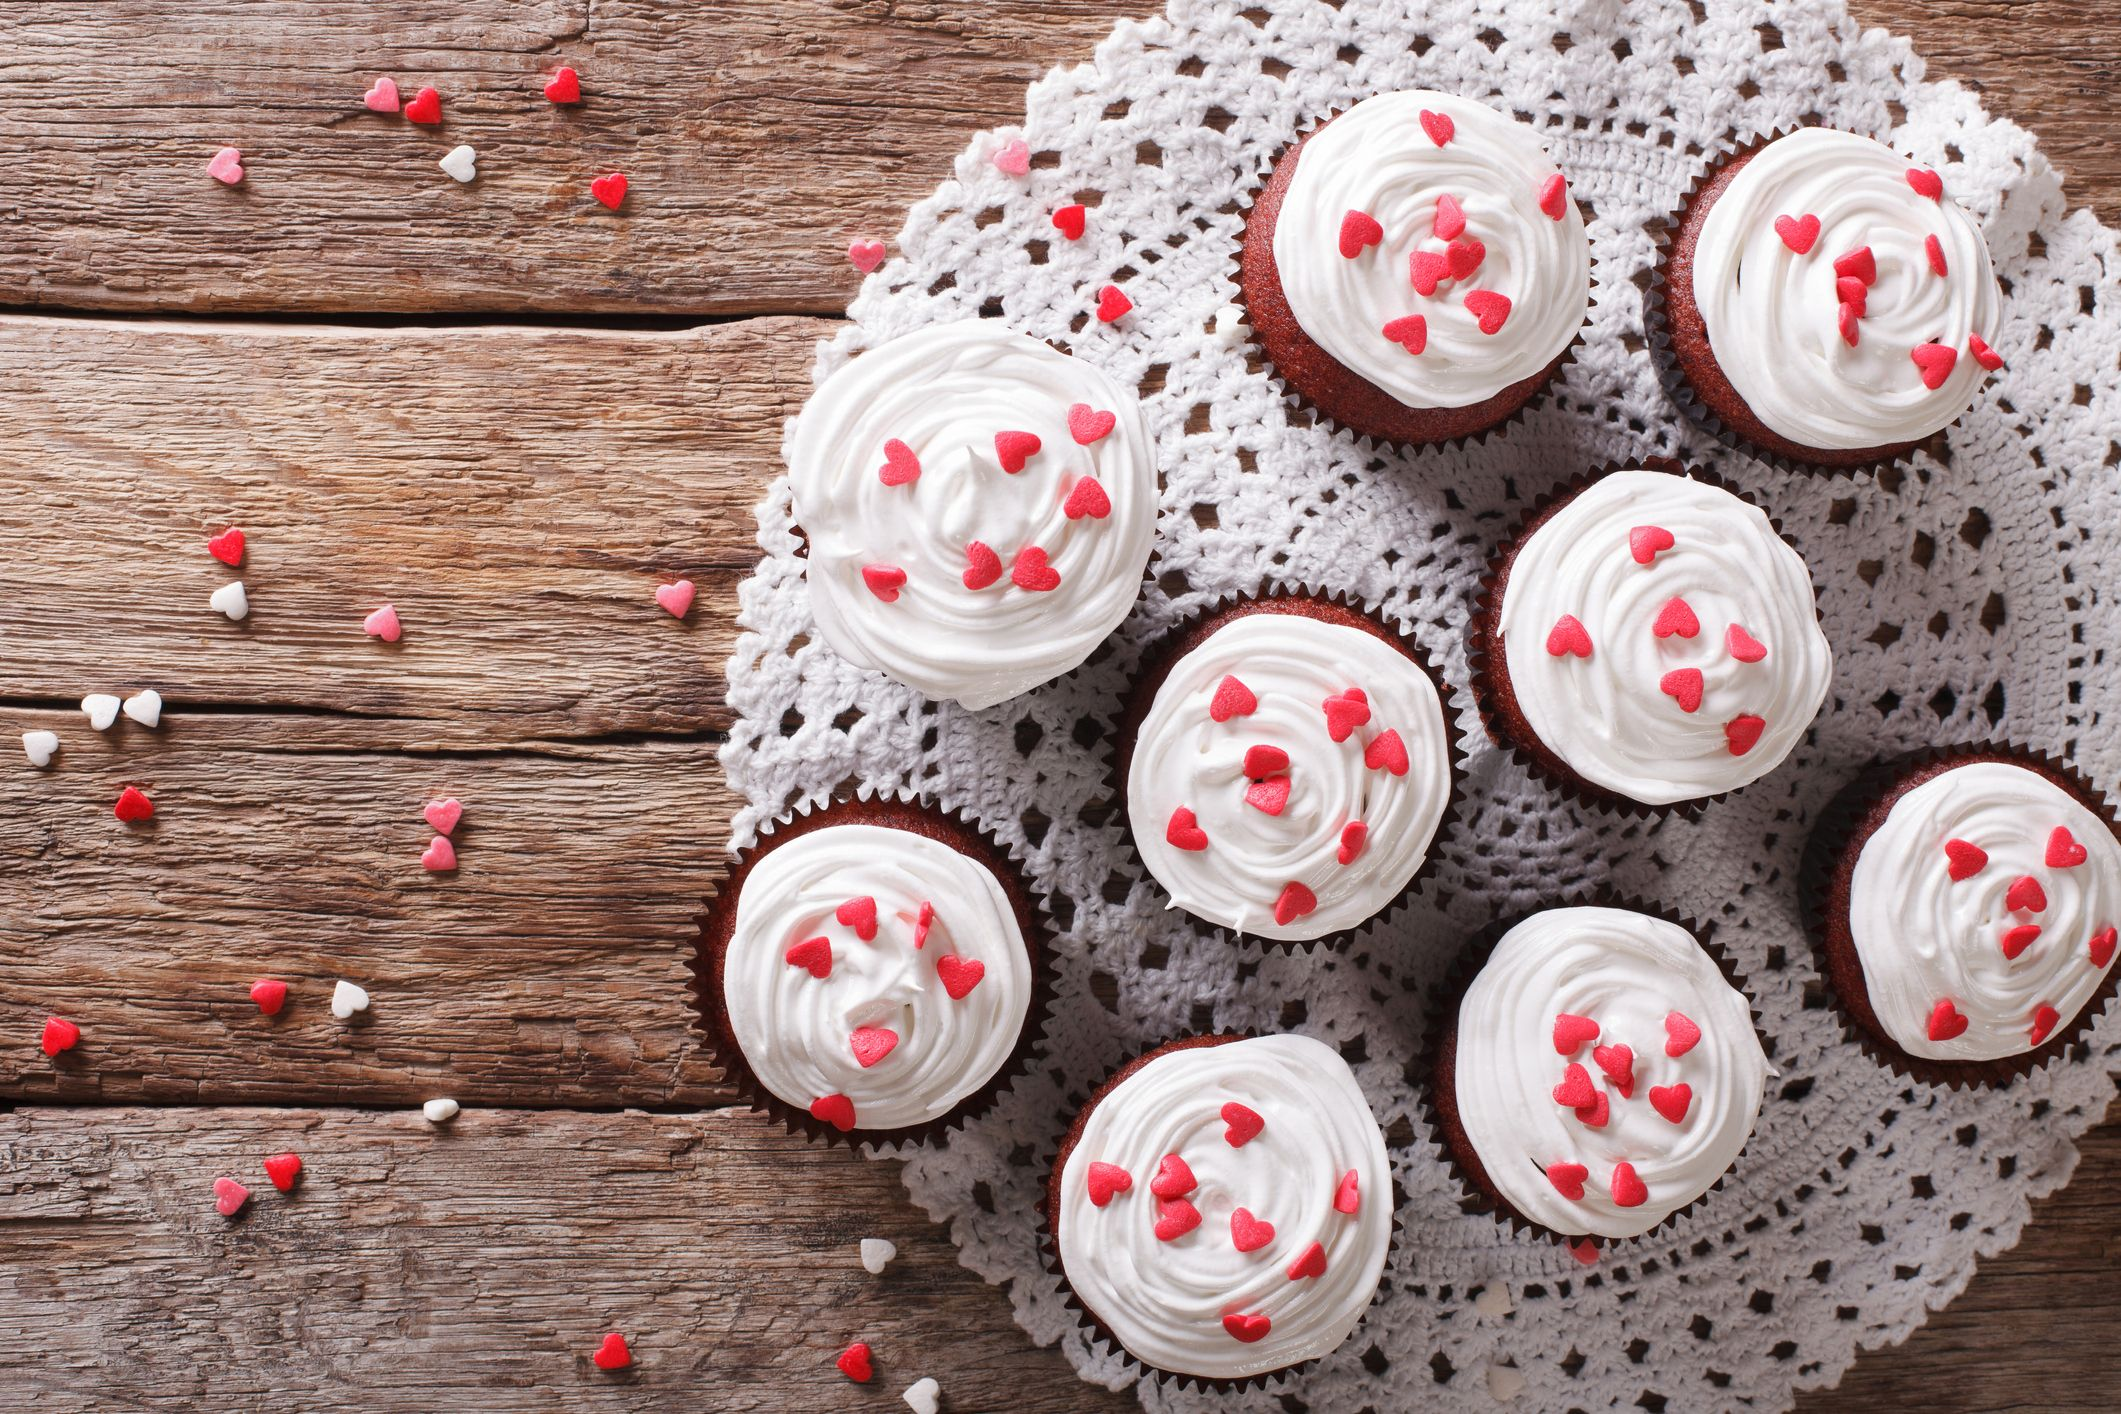 70 Best Valentine's Day Desserts for the Sweetest End to February 14